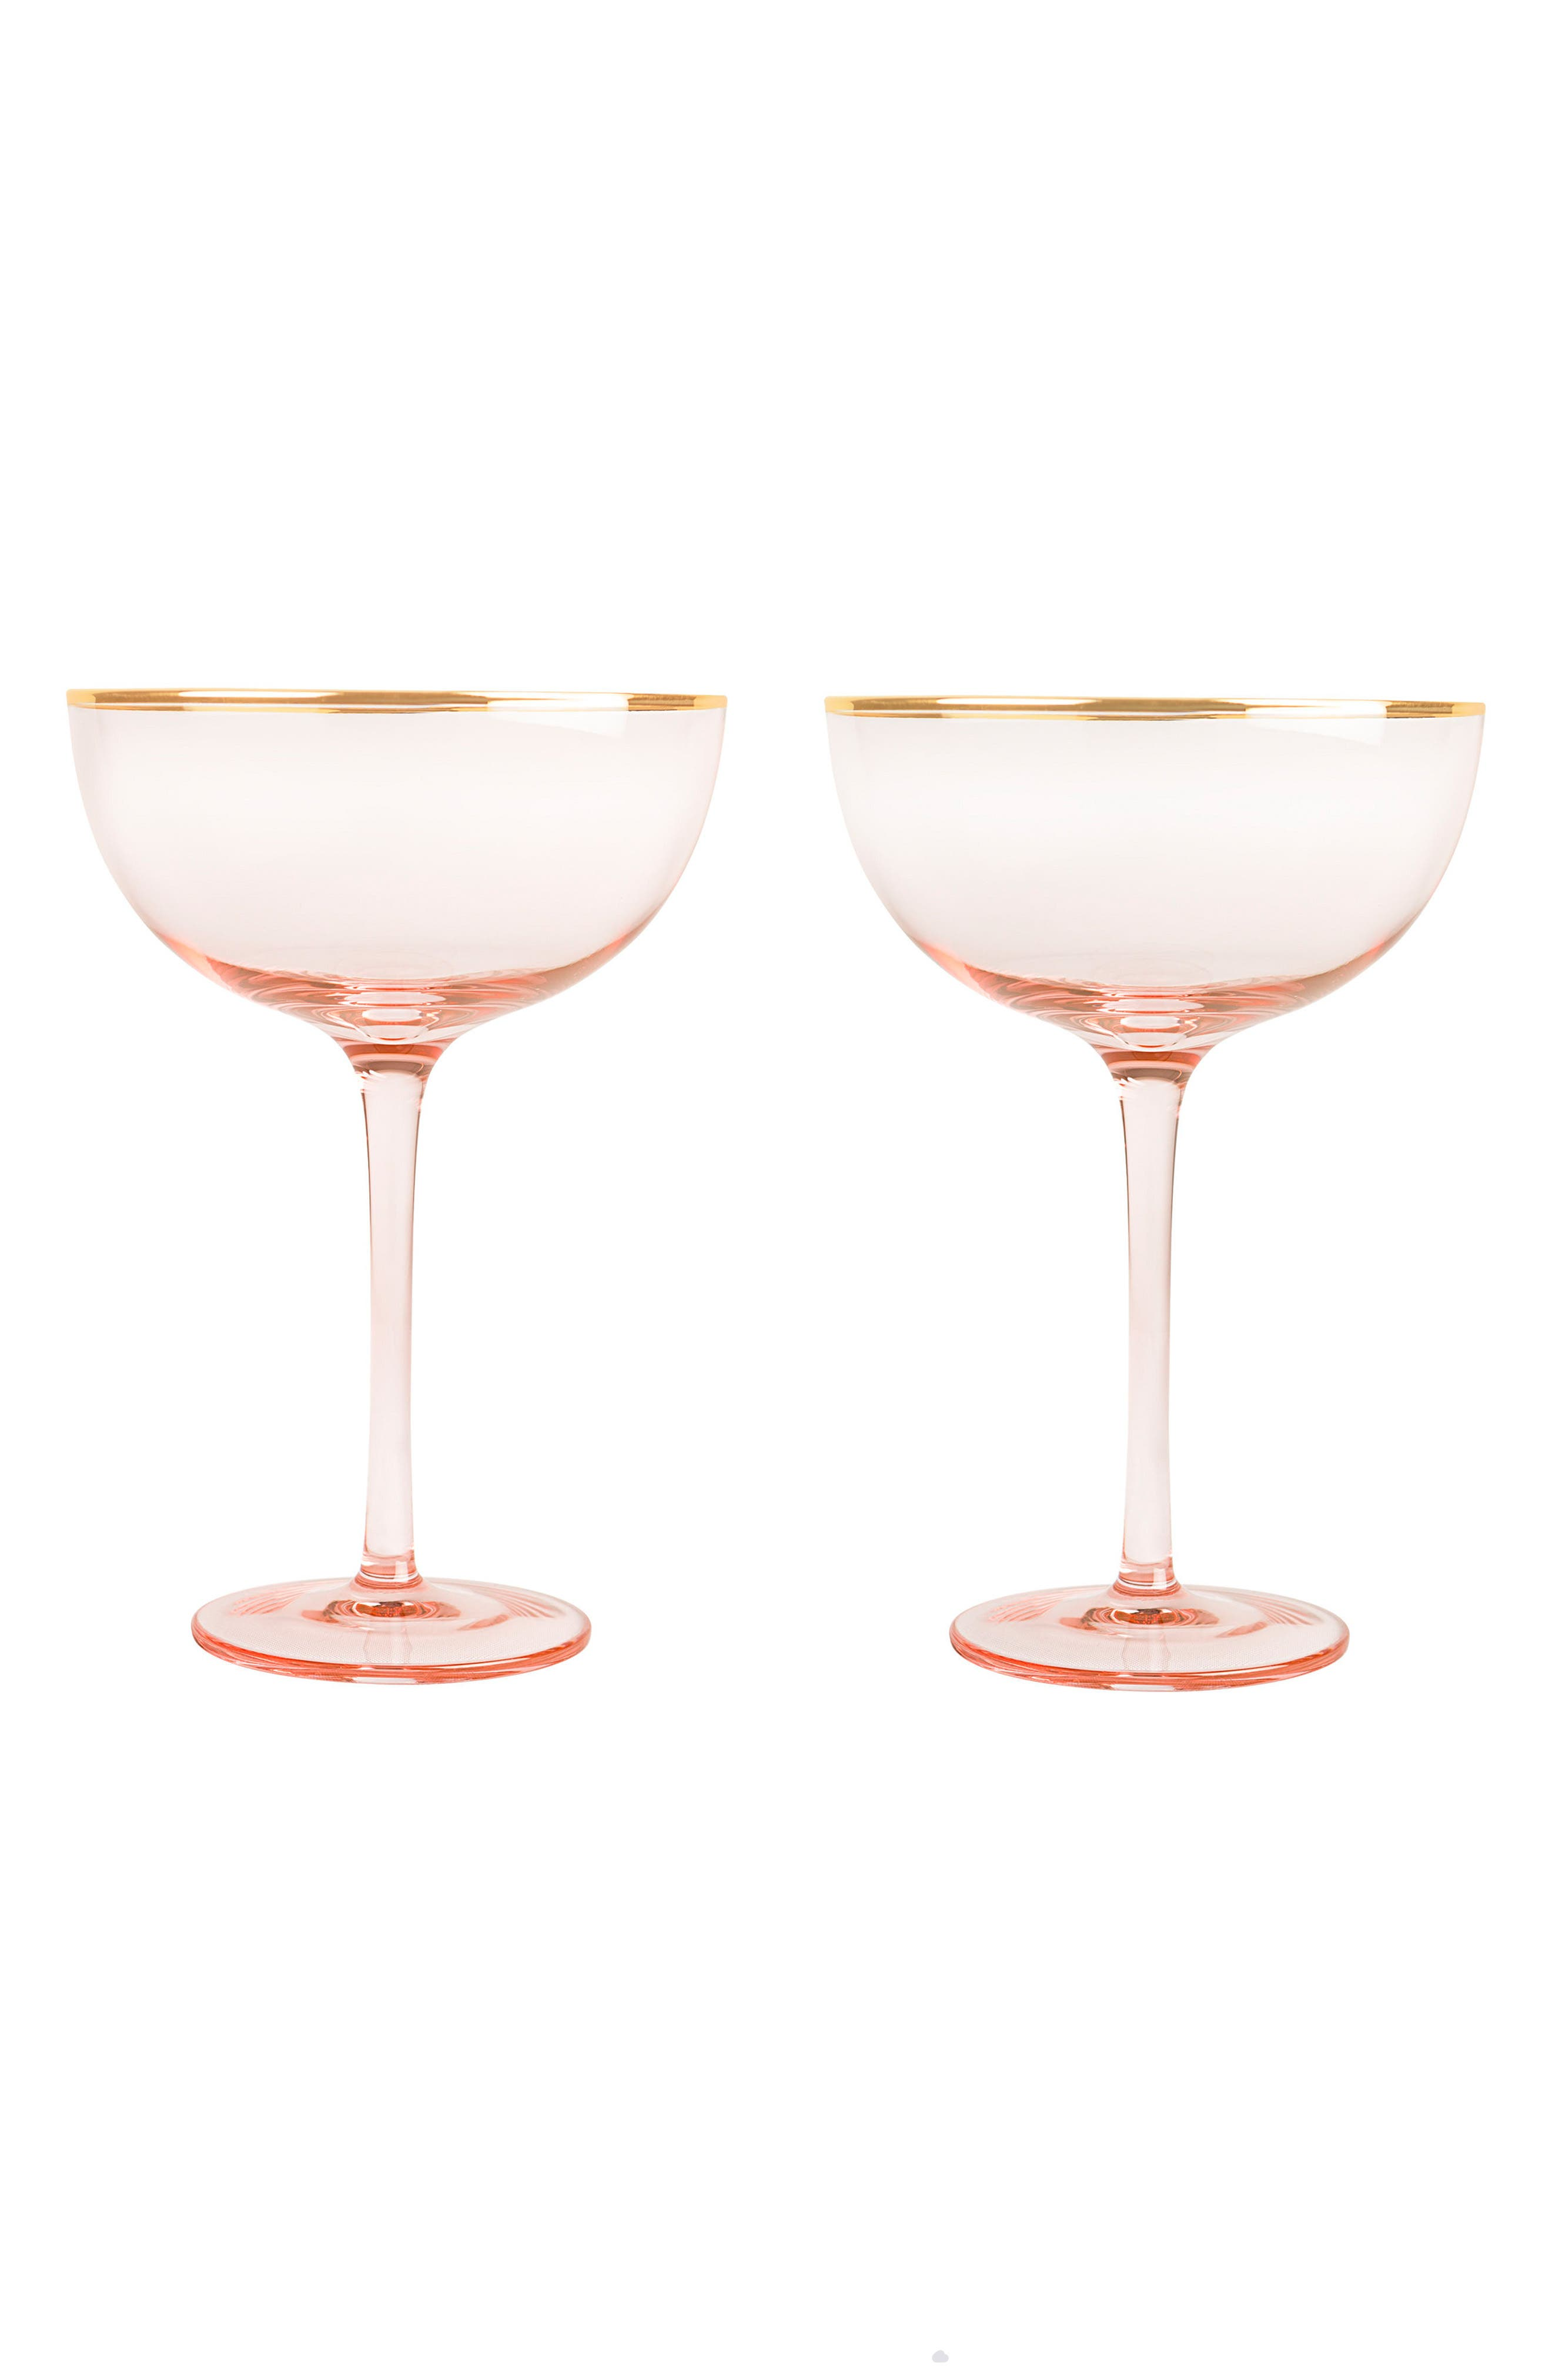 Monogram Set of 2 Champagne Coupes,                             Main thumbnail 1, color,                             220